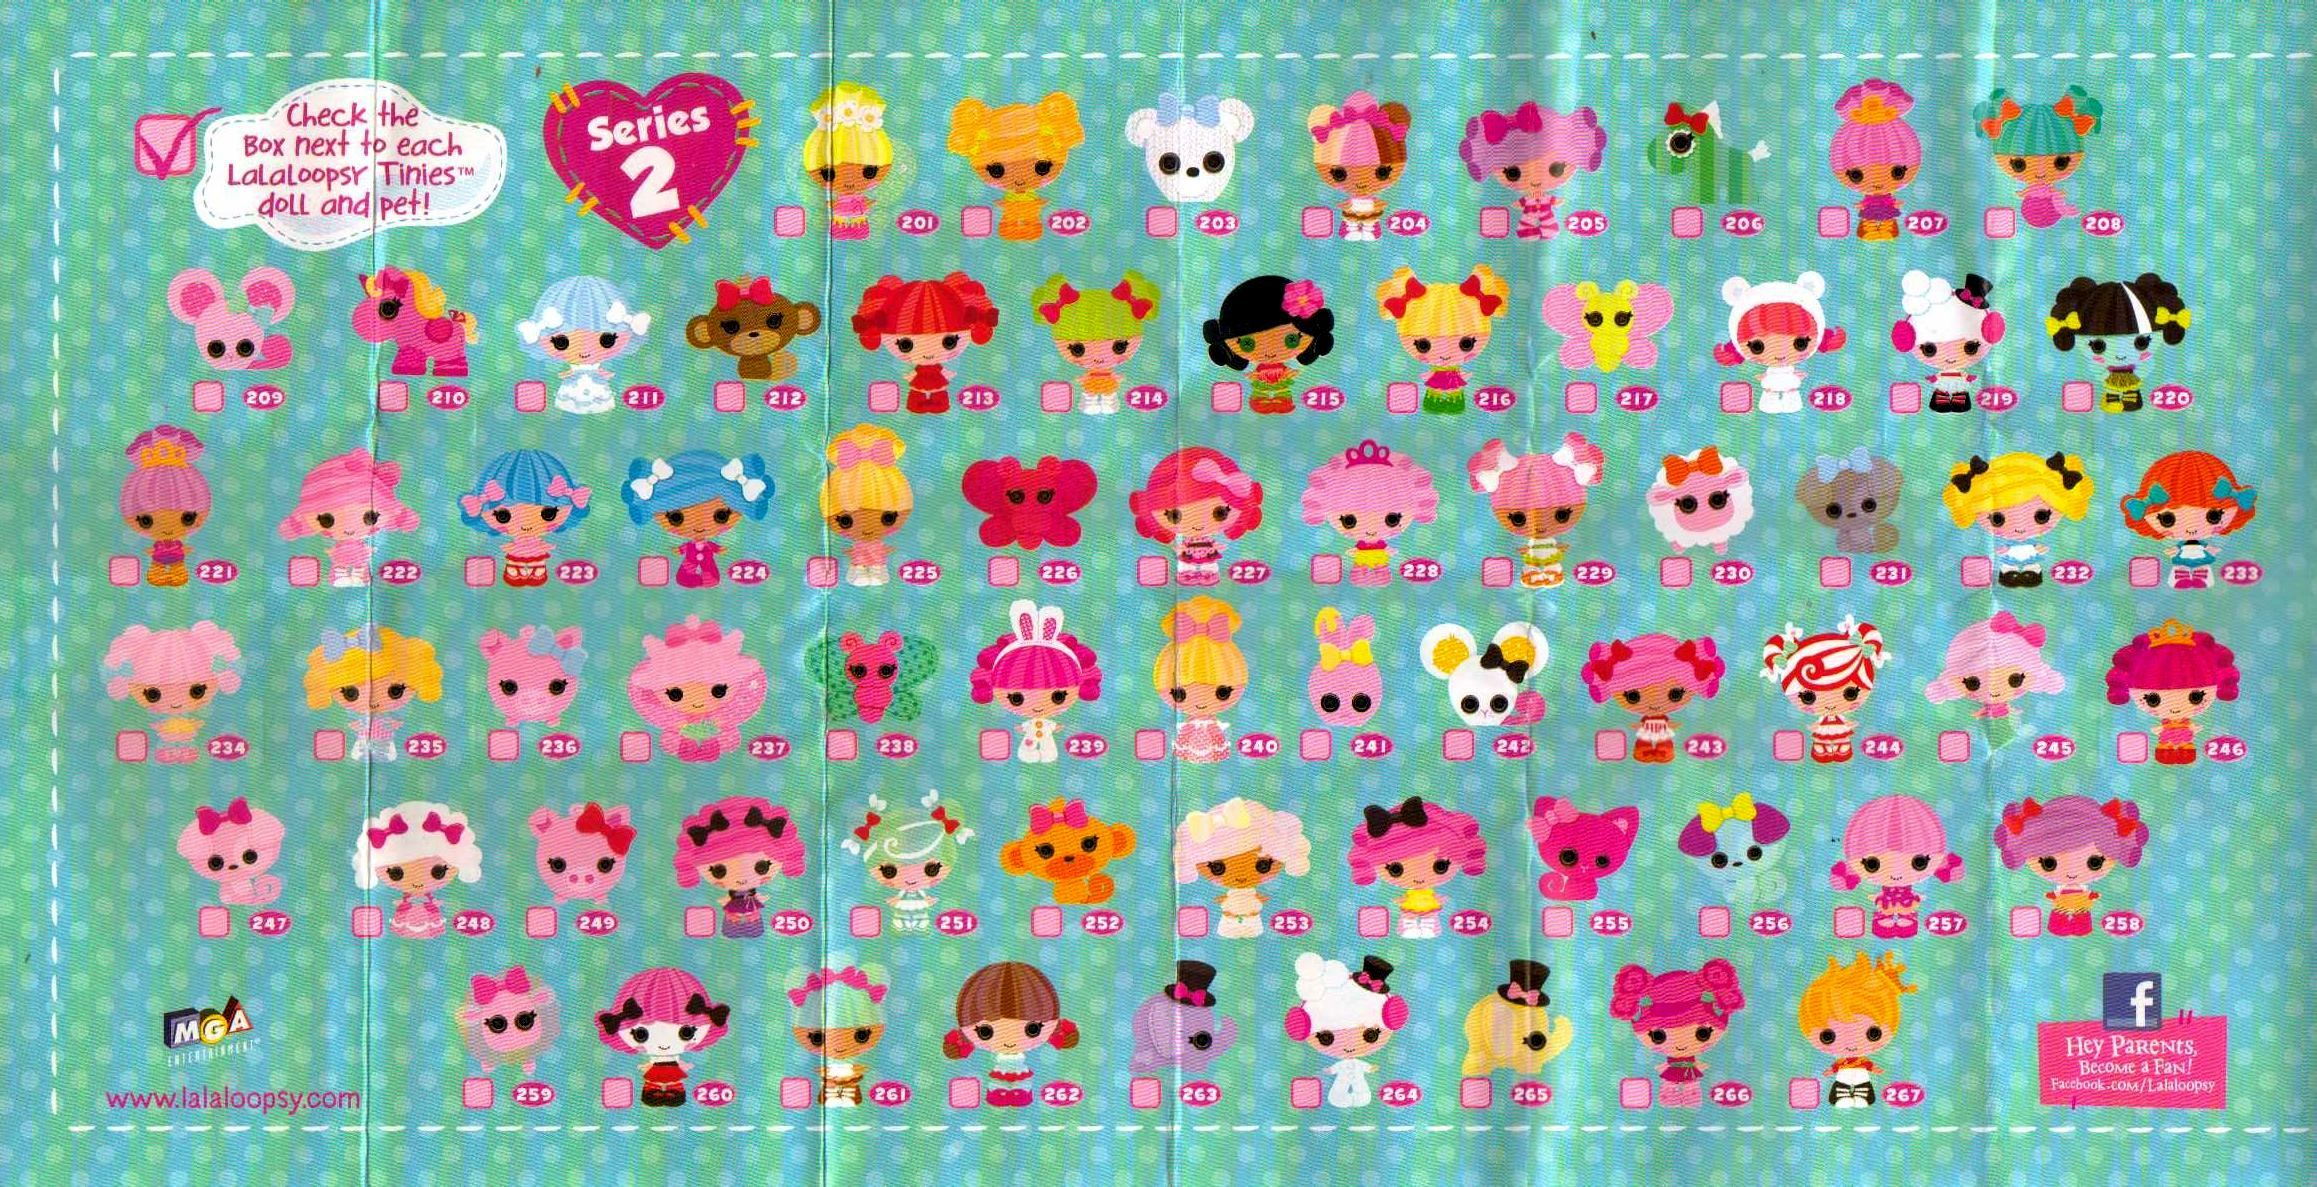 walmart lalaloopsy tinies - Google Search | ♥ Jewell\'s Pins ...